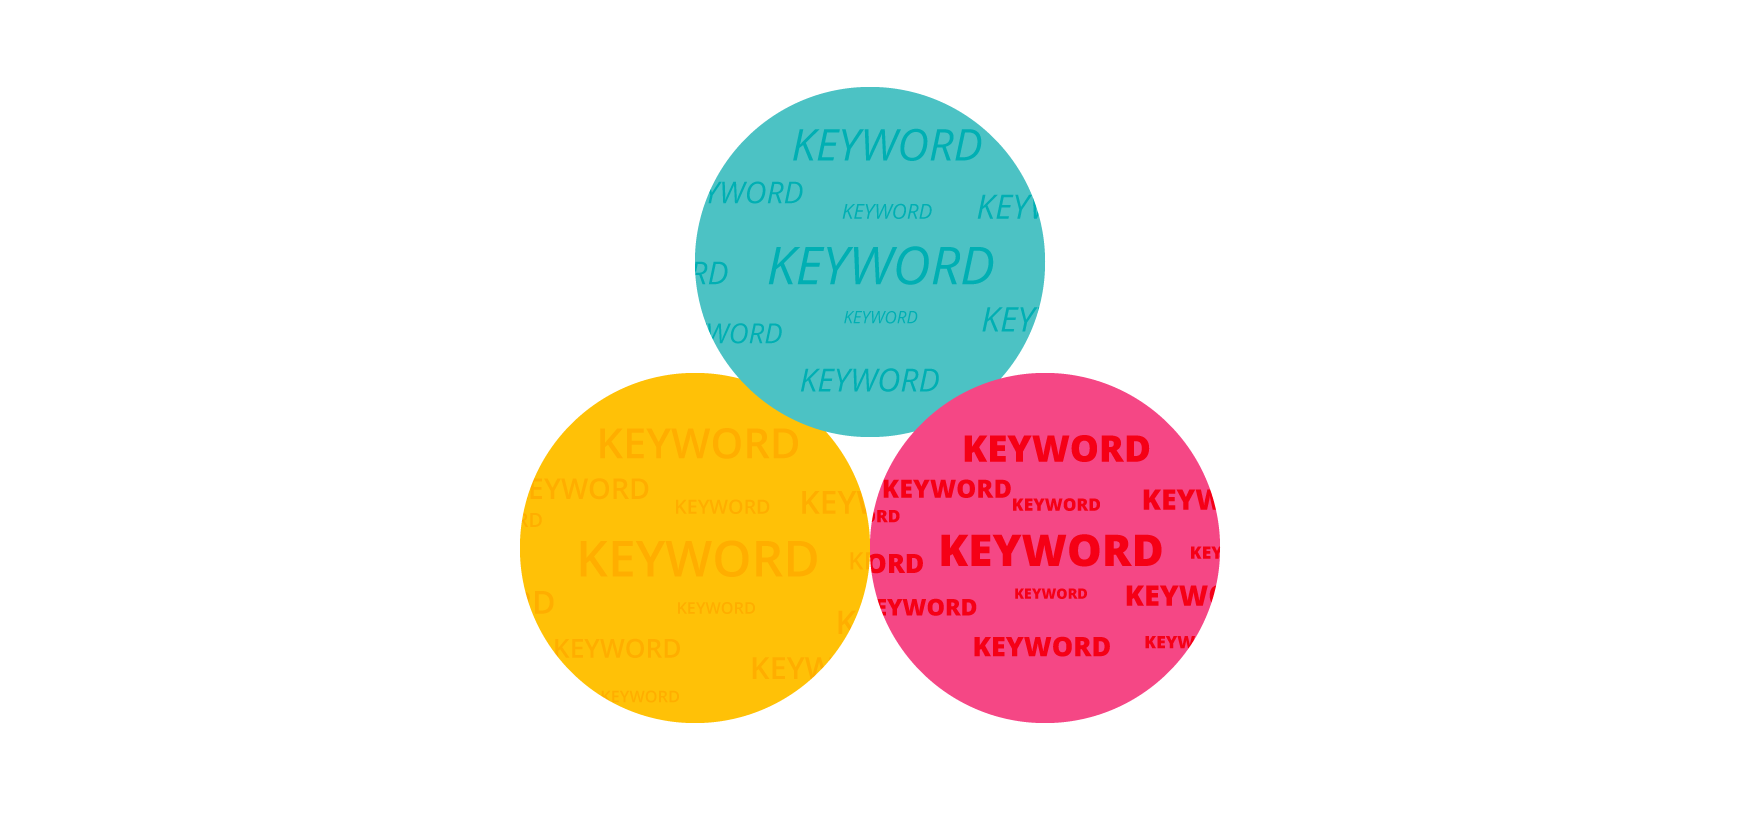 How to Group Keywords for SEO